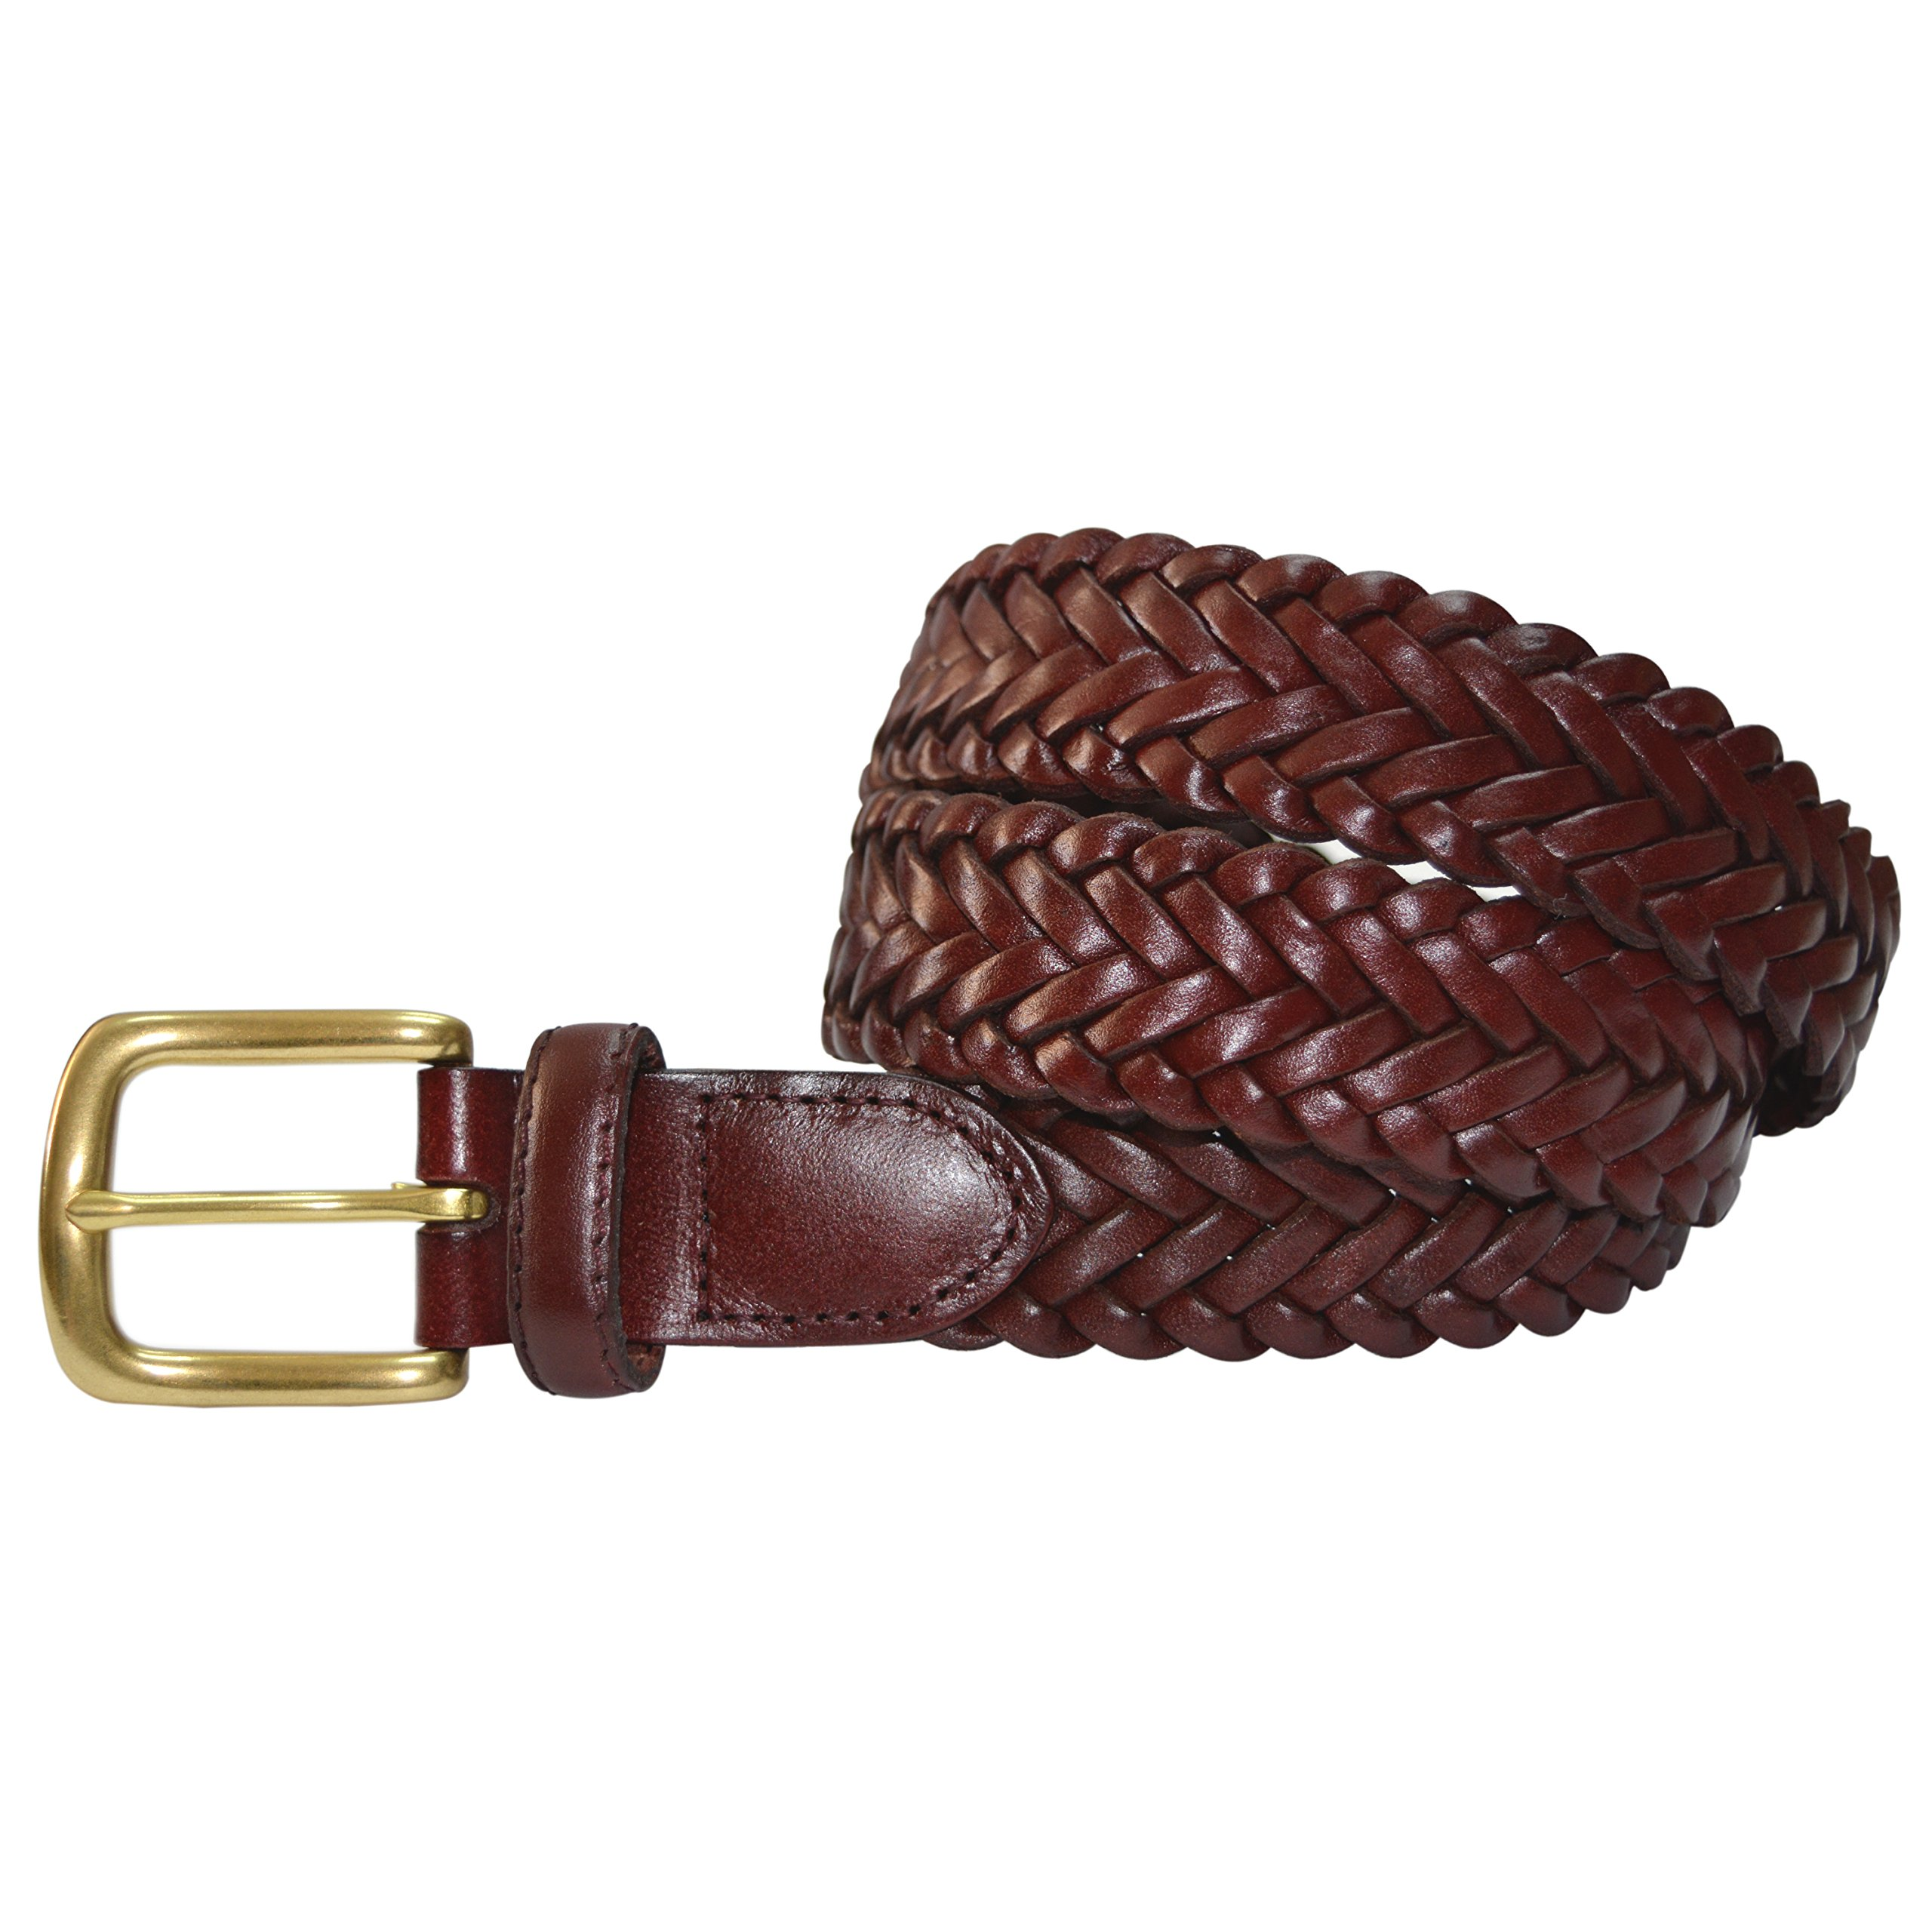 796-OXB-38 - Toneka Men's Casual Woven Full-grain Braided Leather Belt with Solid Brass Buckle by Toneka